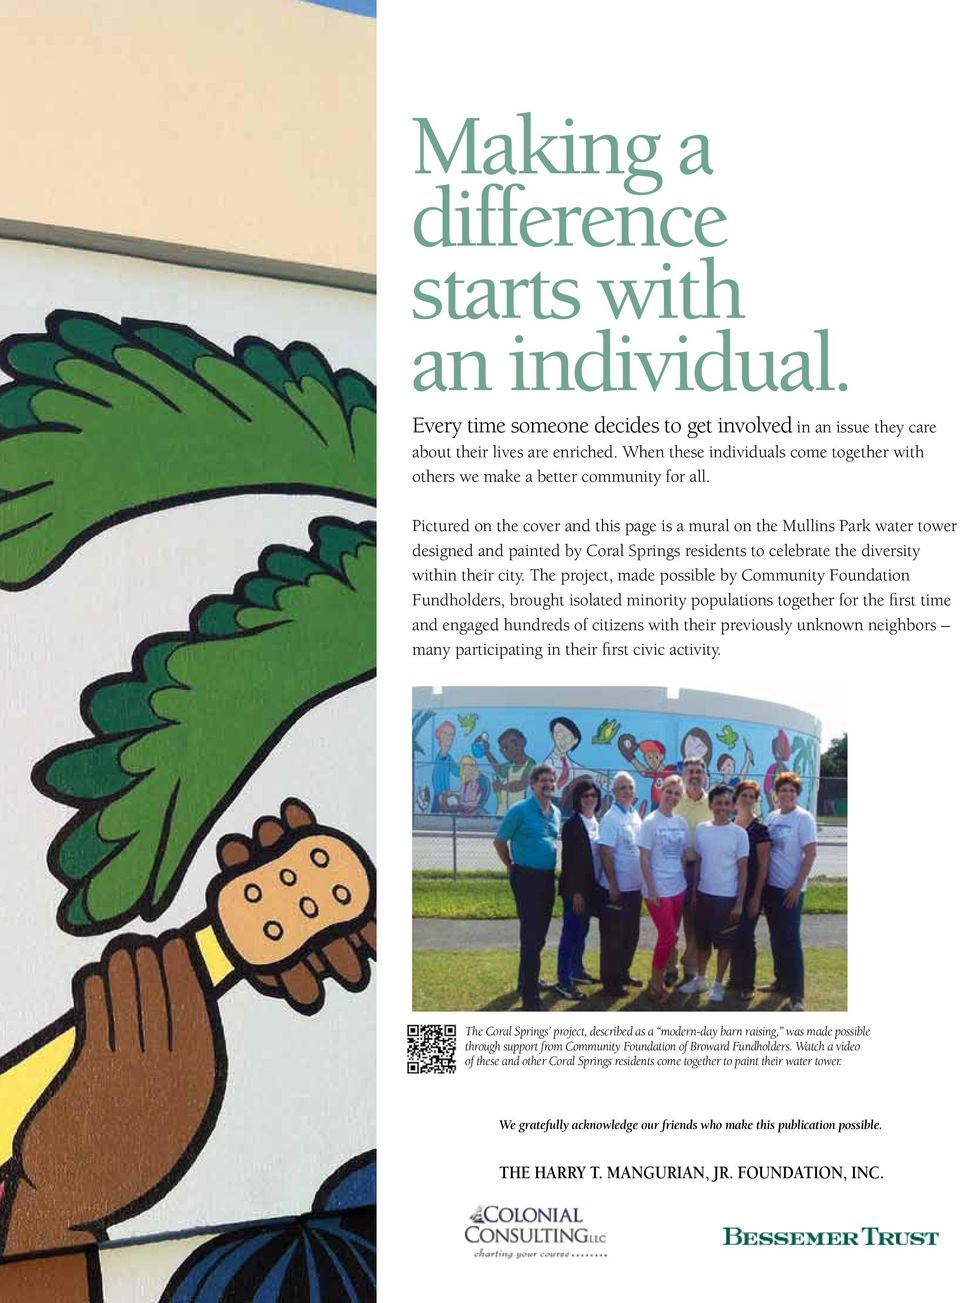 Pictured on the cover and this page is a mural on the Mullins Park water tower designed and painted by Coral Springs residents to celebrate the diversity within their city.